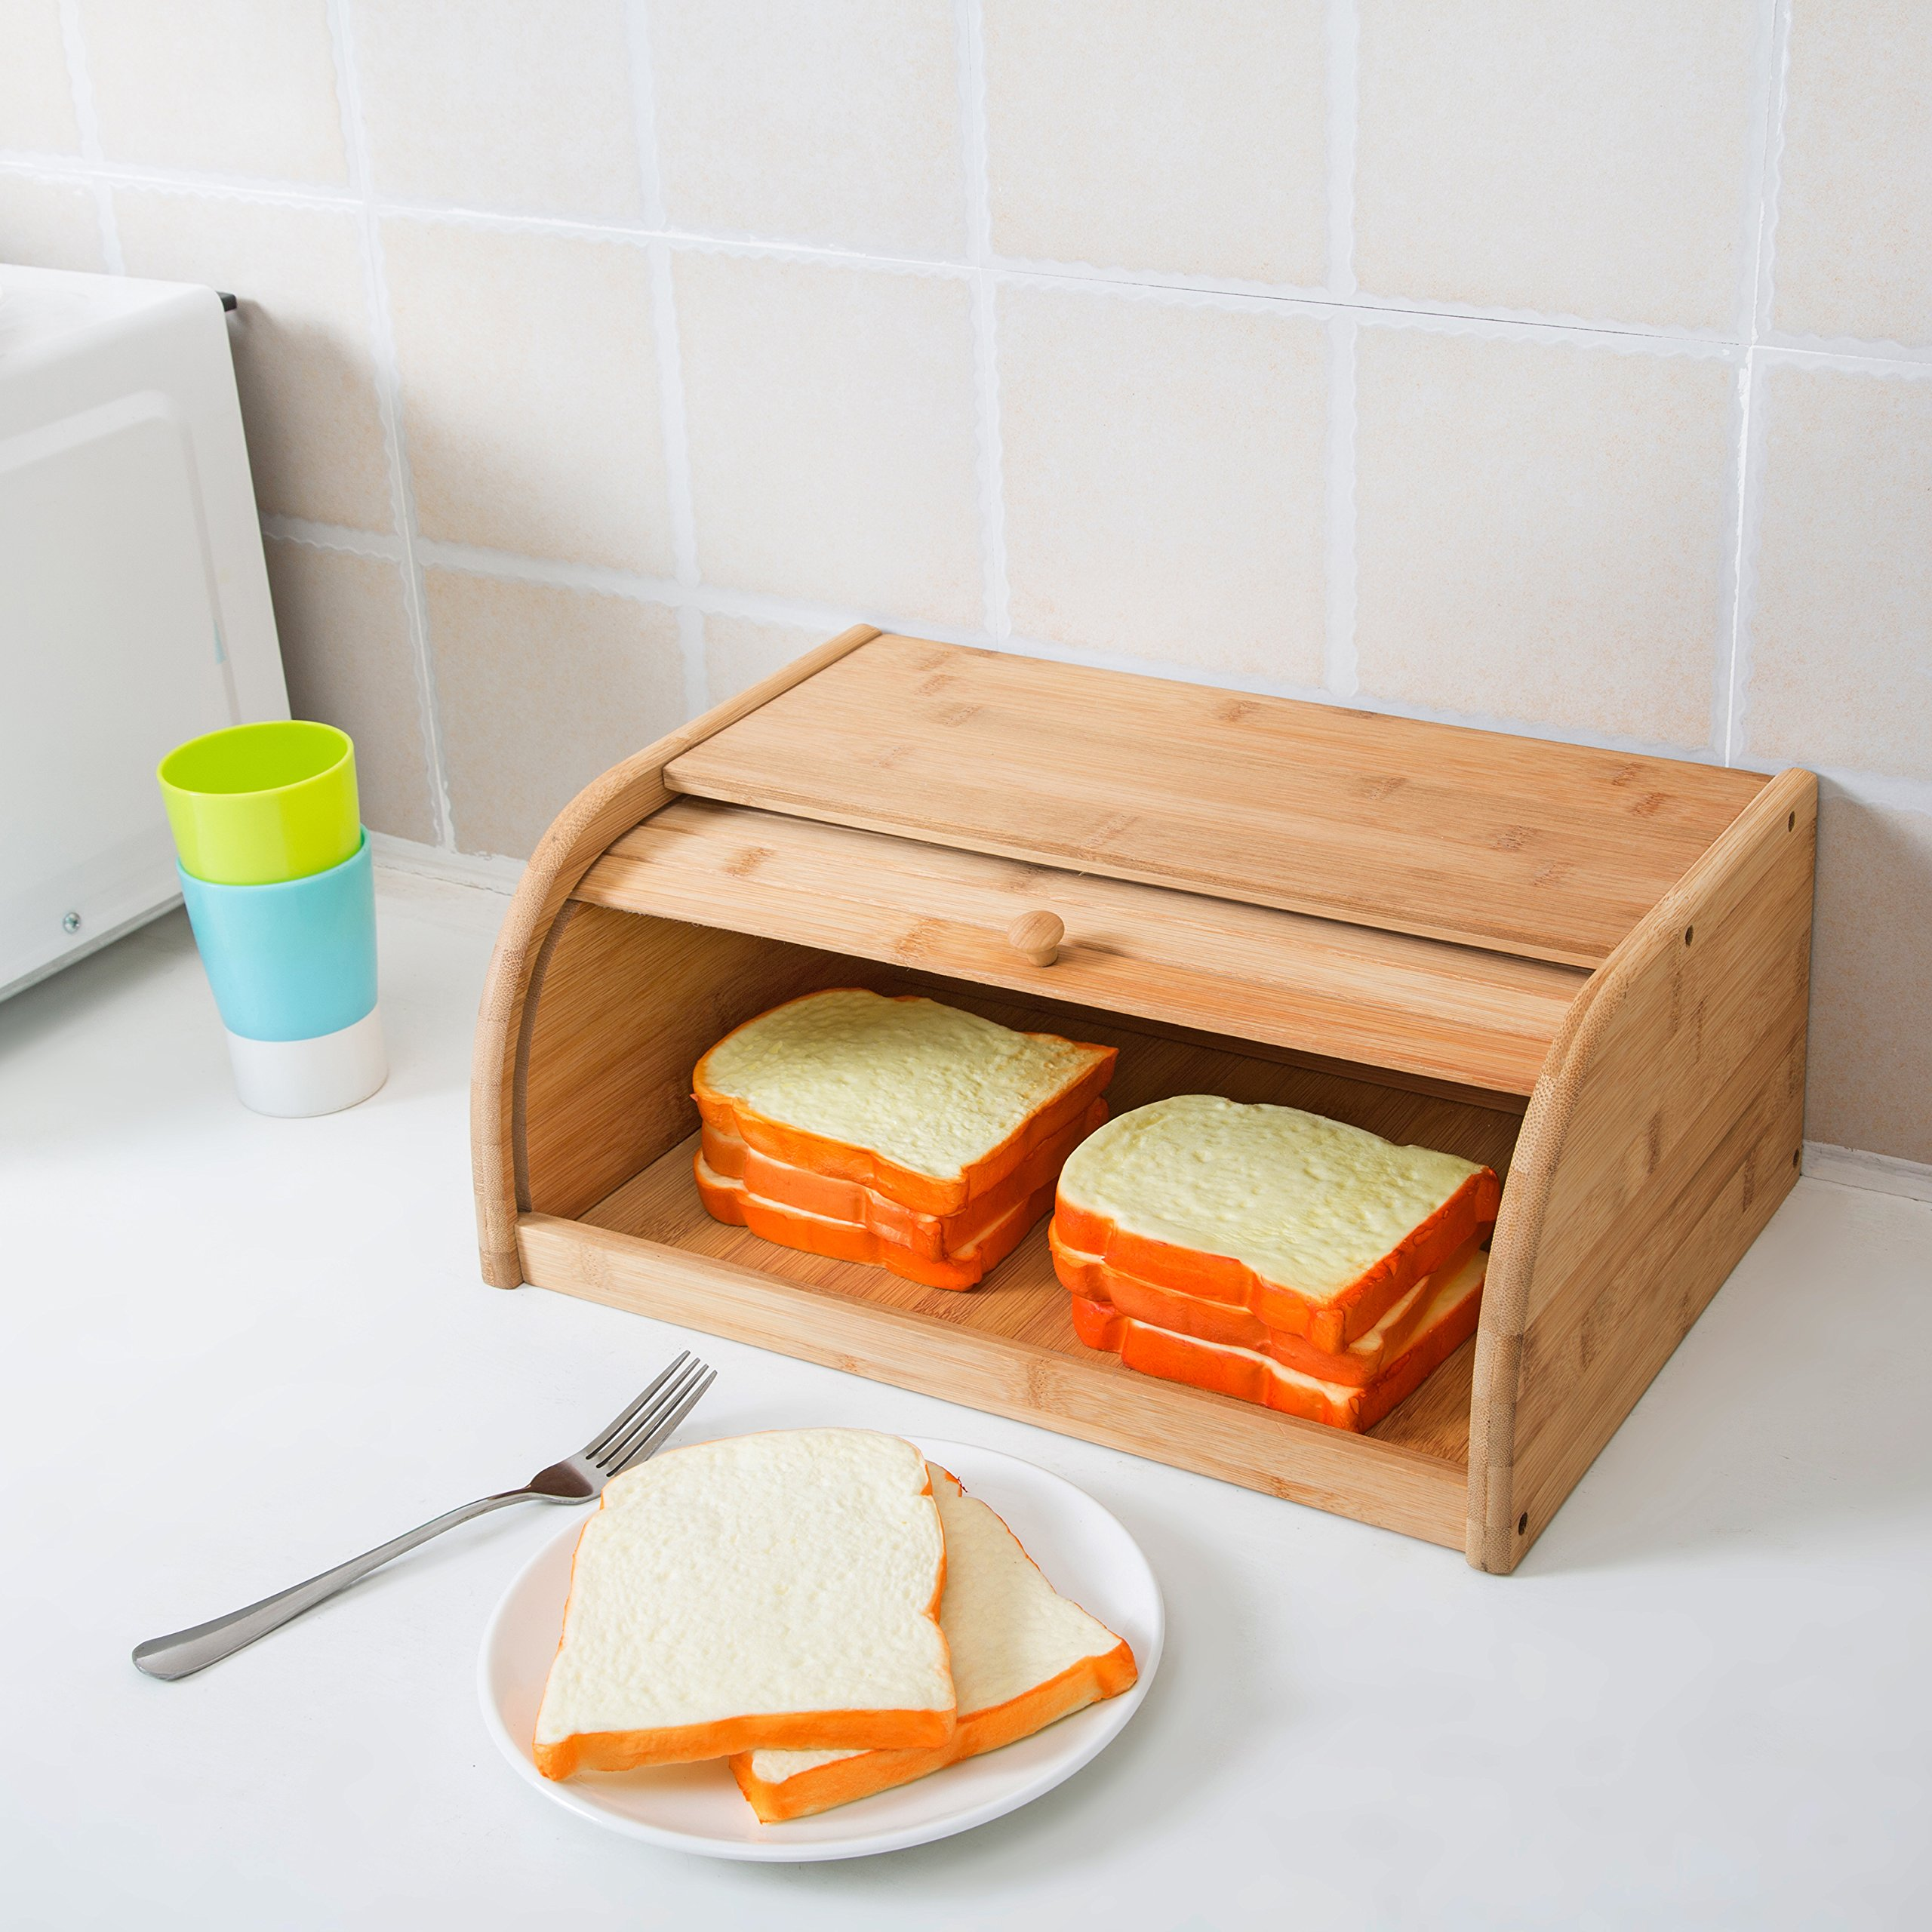 16 inch Kitchen Natural Wooden Bamboo Rolltop Bread Box Food Storage - MyGift by MyGift (Image #3)